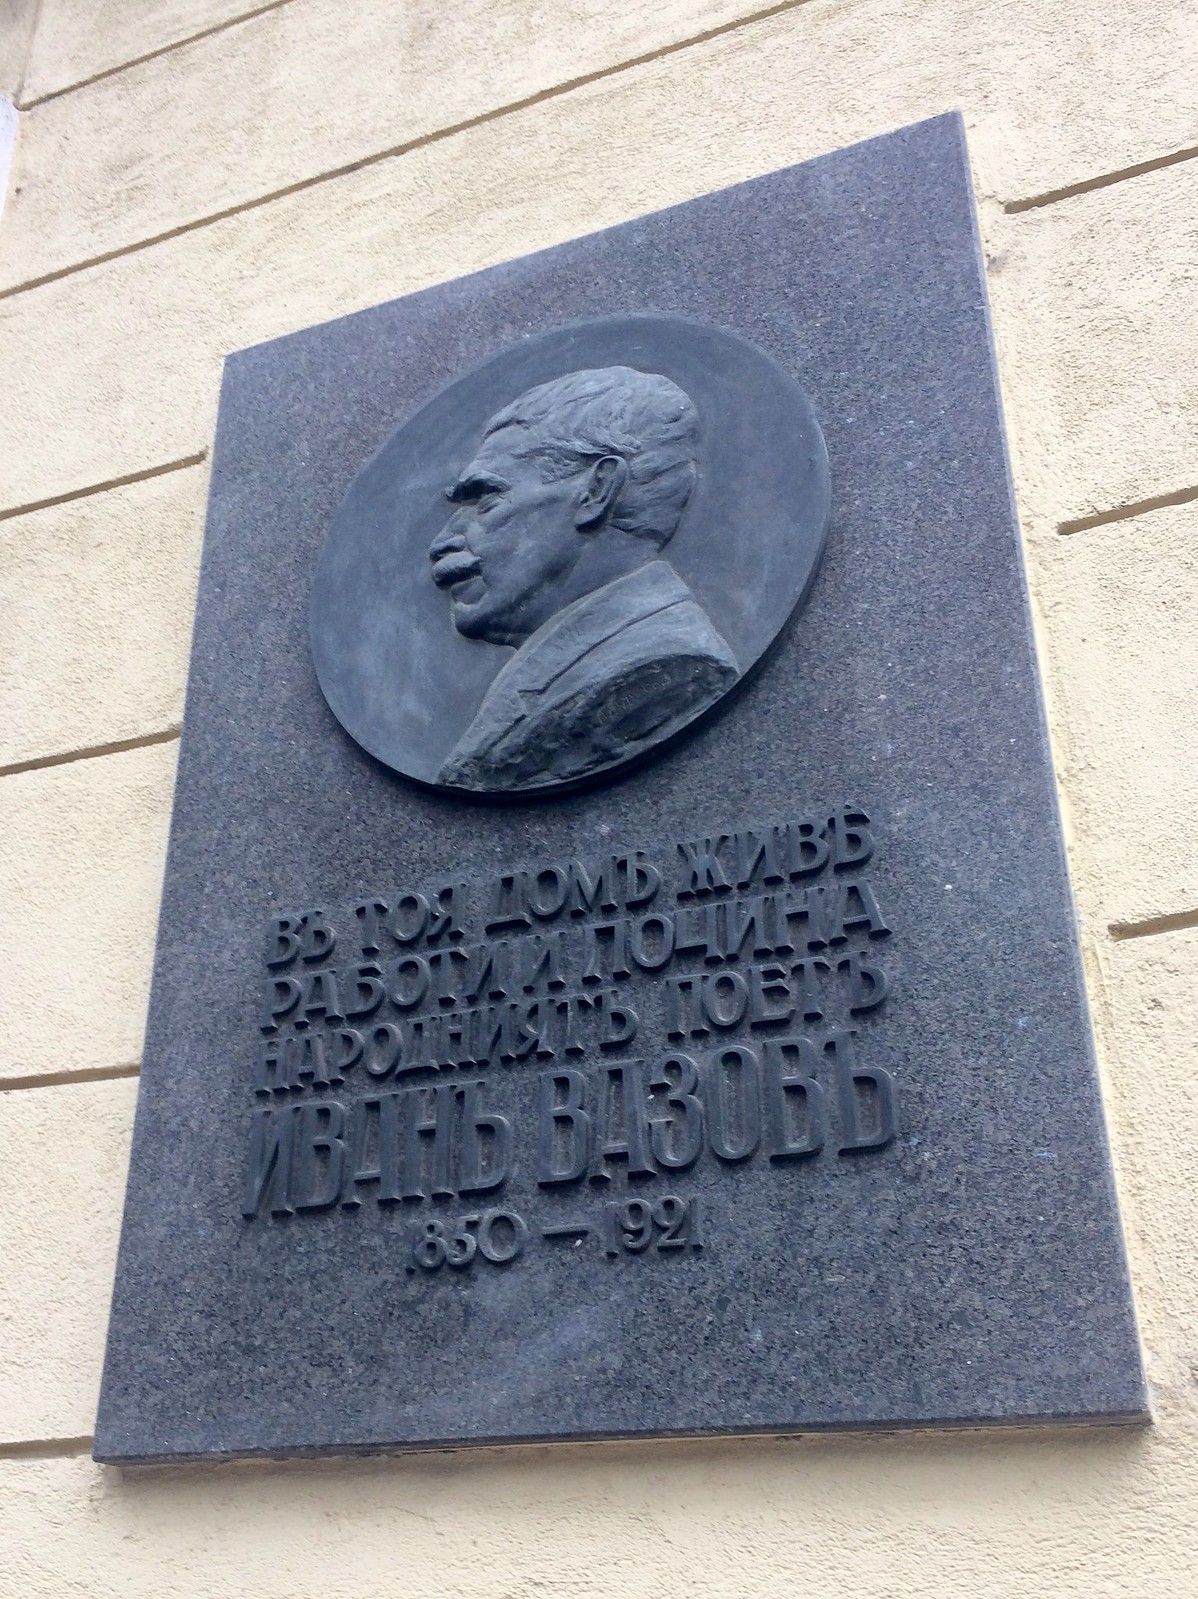 201705 - Balkans - Ivan Vasov Plaque - 4 of 66 - Sofia - Oborishte - Sofia, May 21, 2017